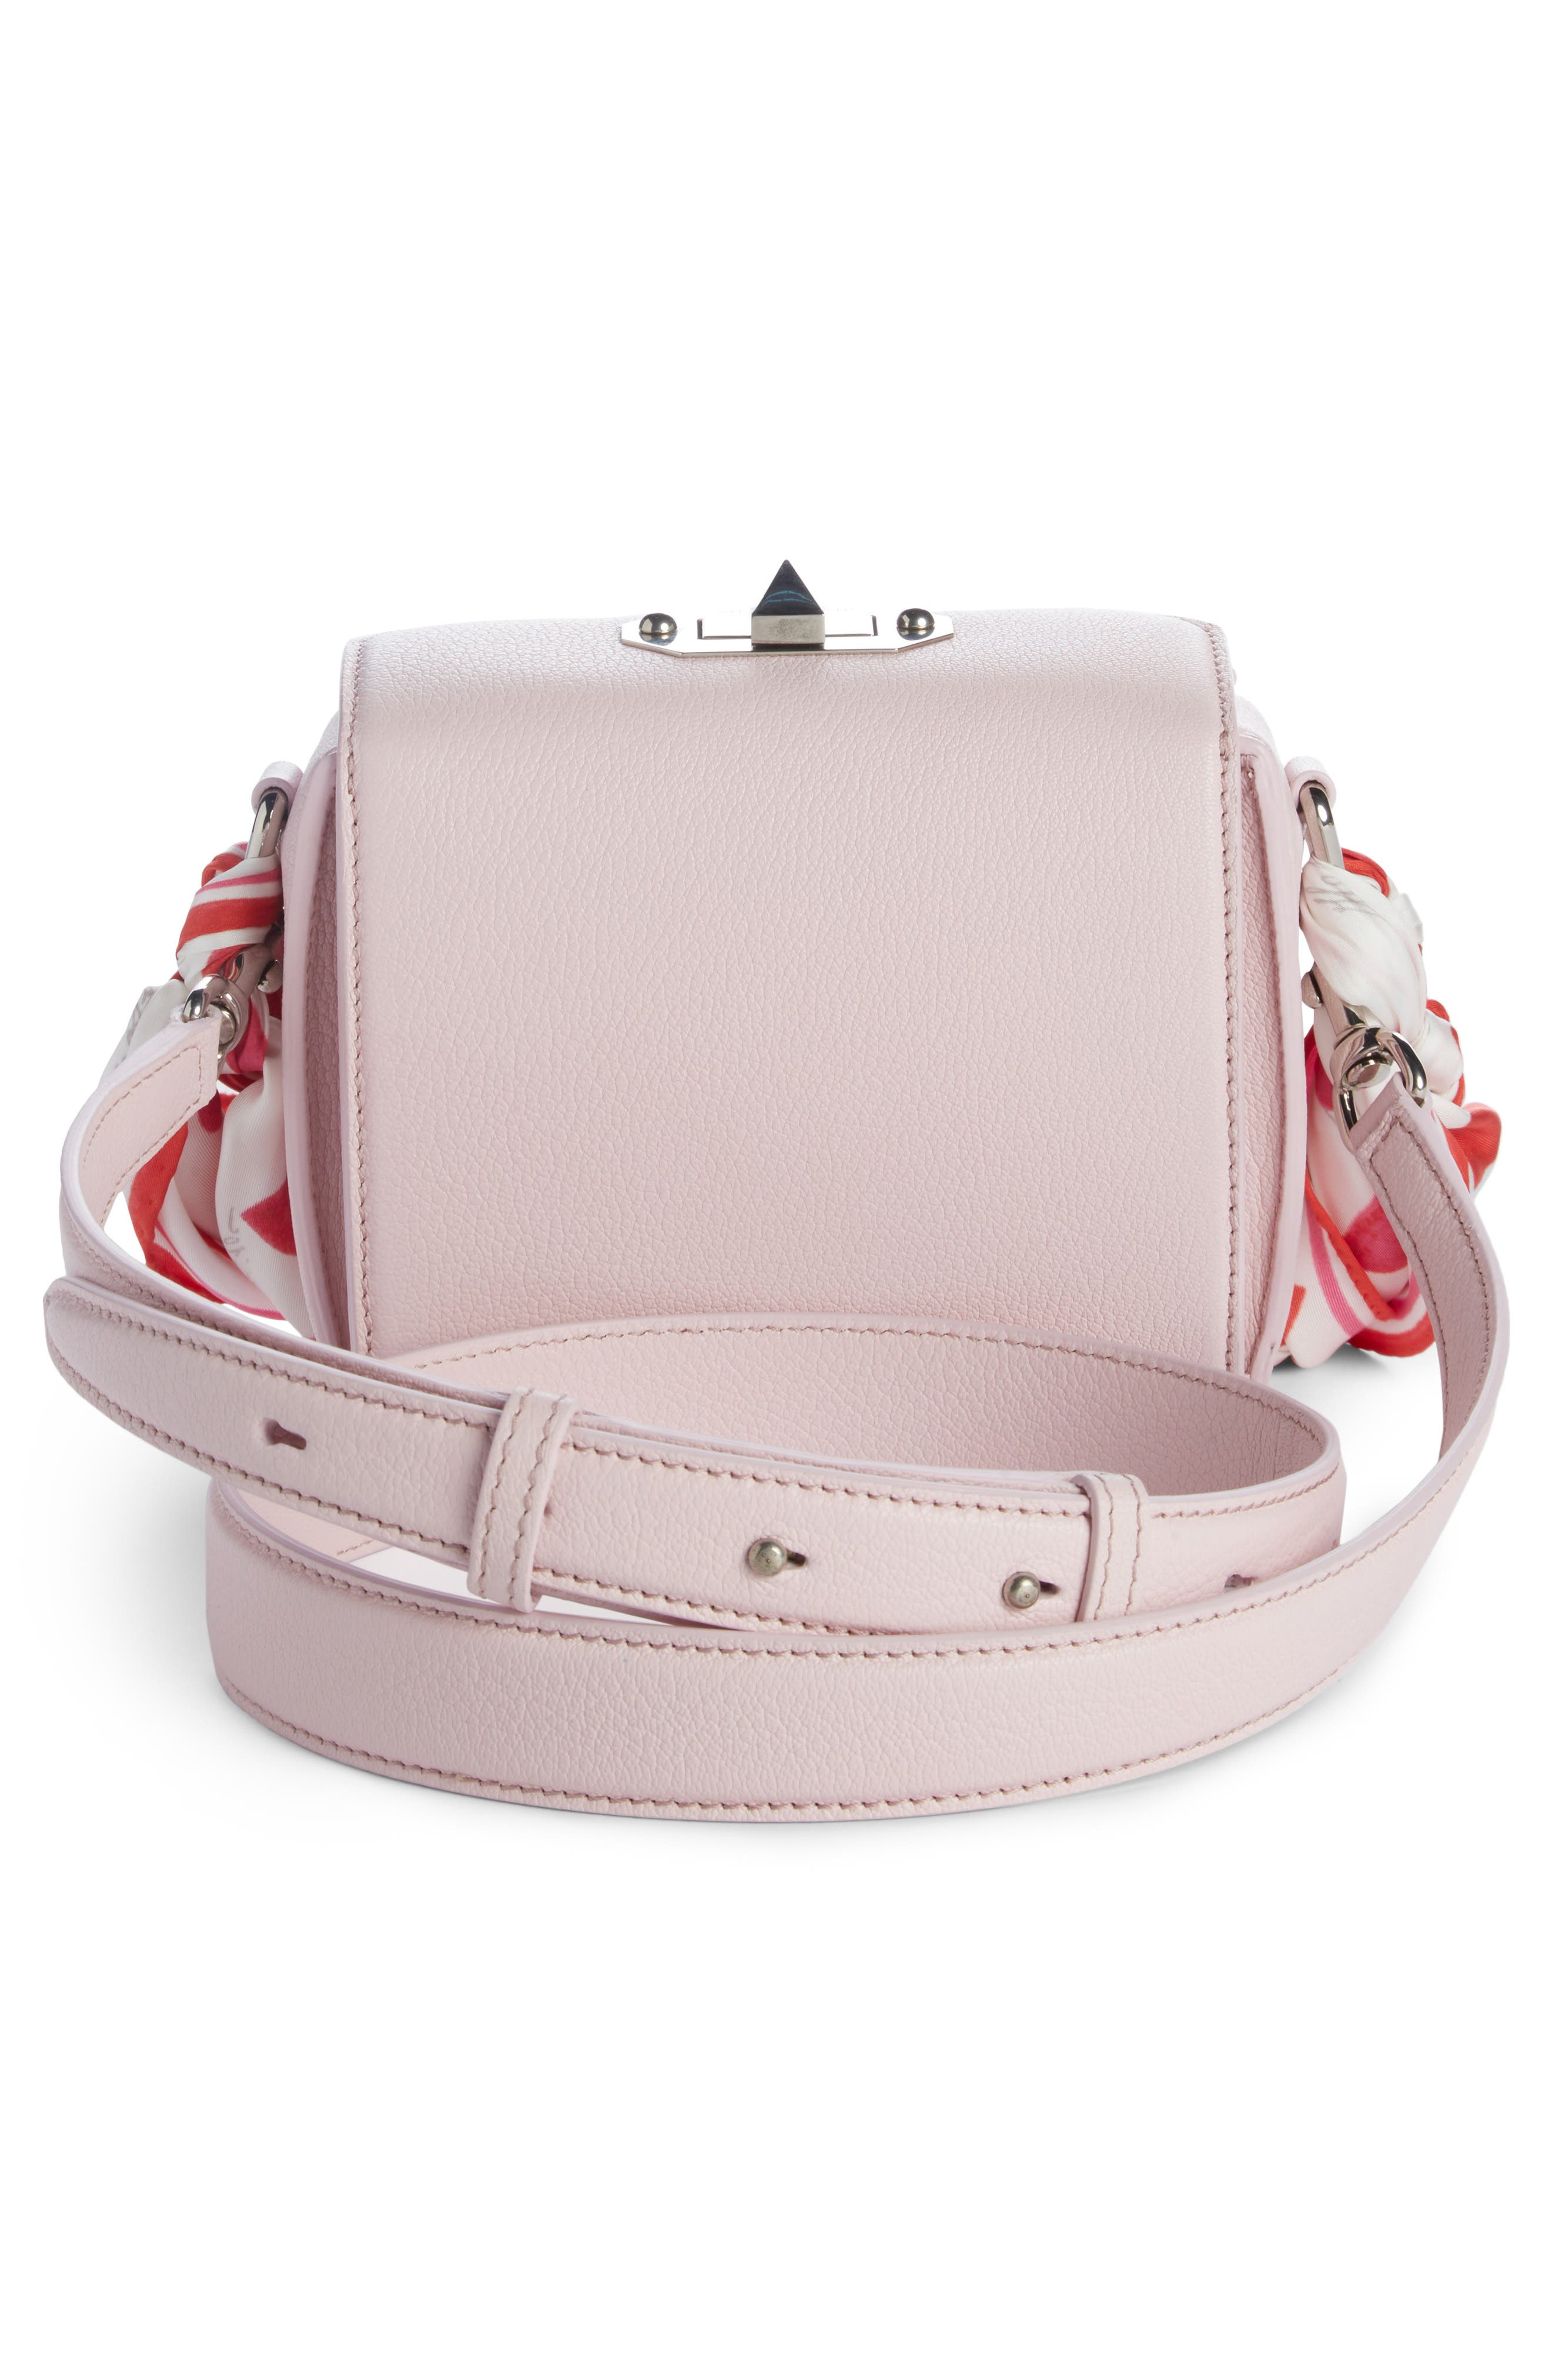 Box Bag 16 Leather Bag,                             Alternate thumbnail 3, color,                             Baby Pink/ Ivory